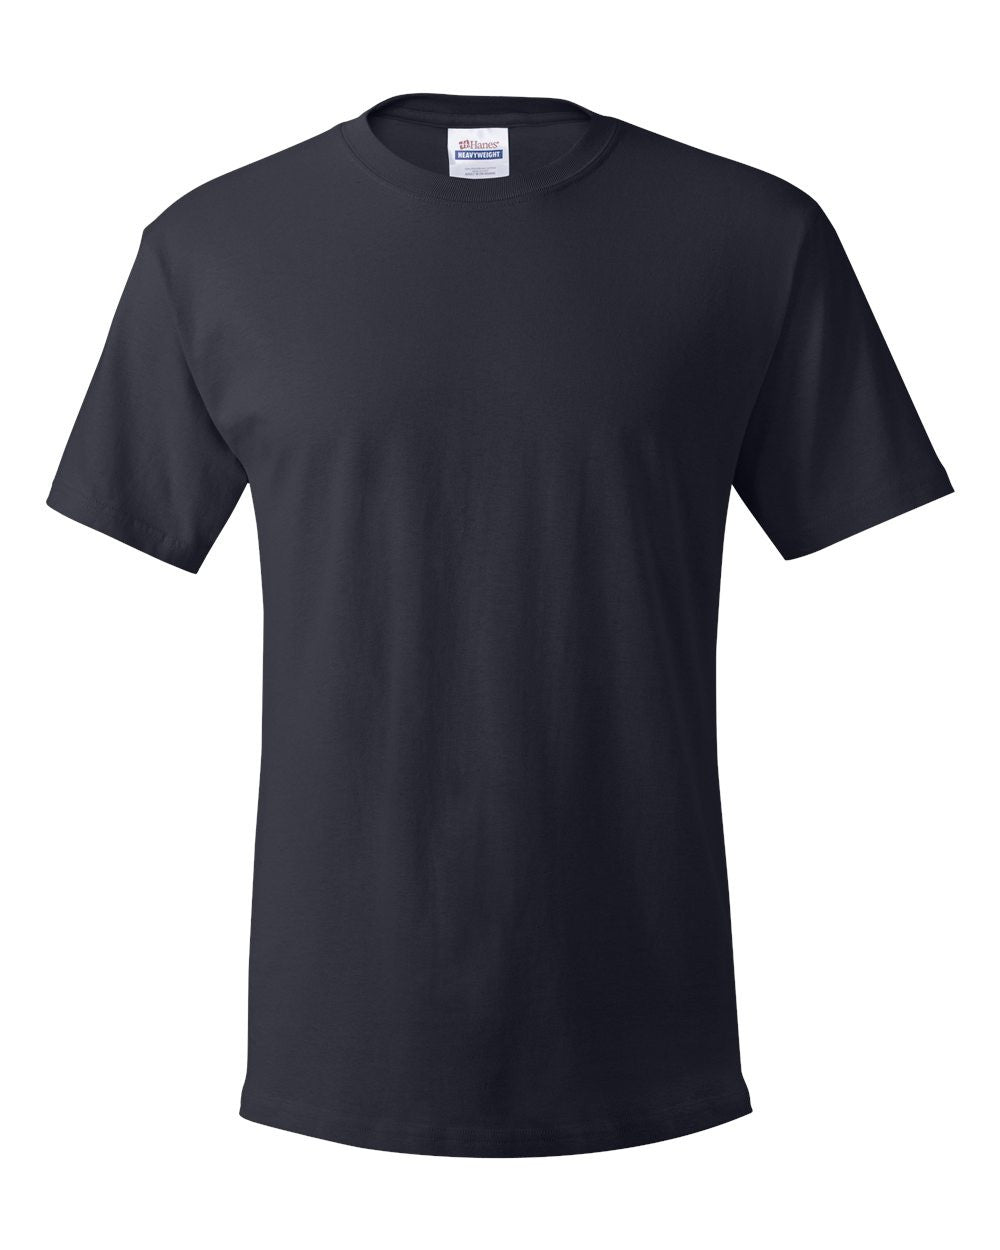 10 pack Hanes T-shirts - Discountedrack.com